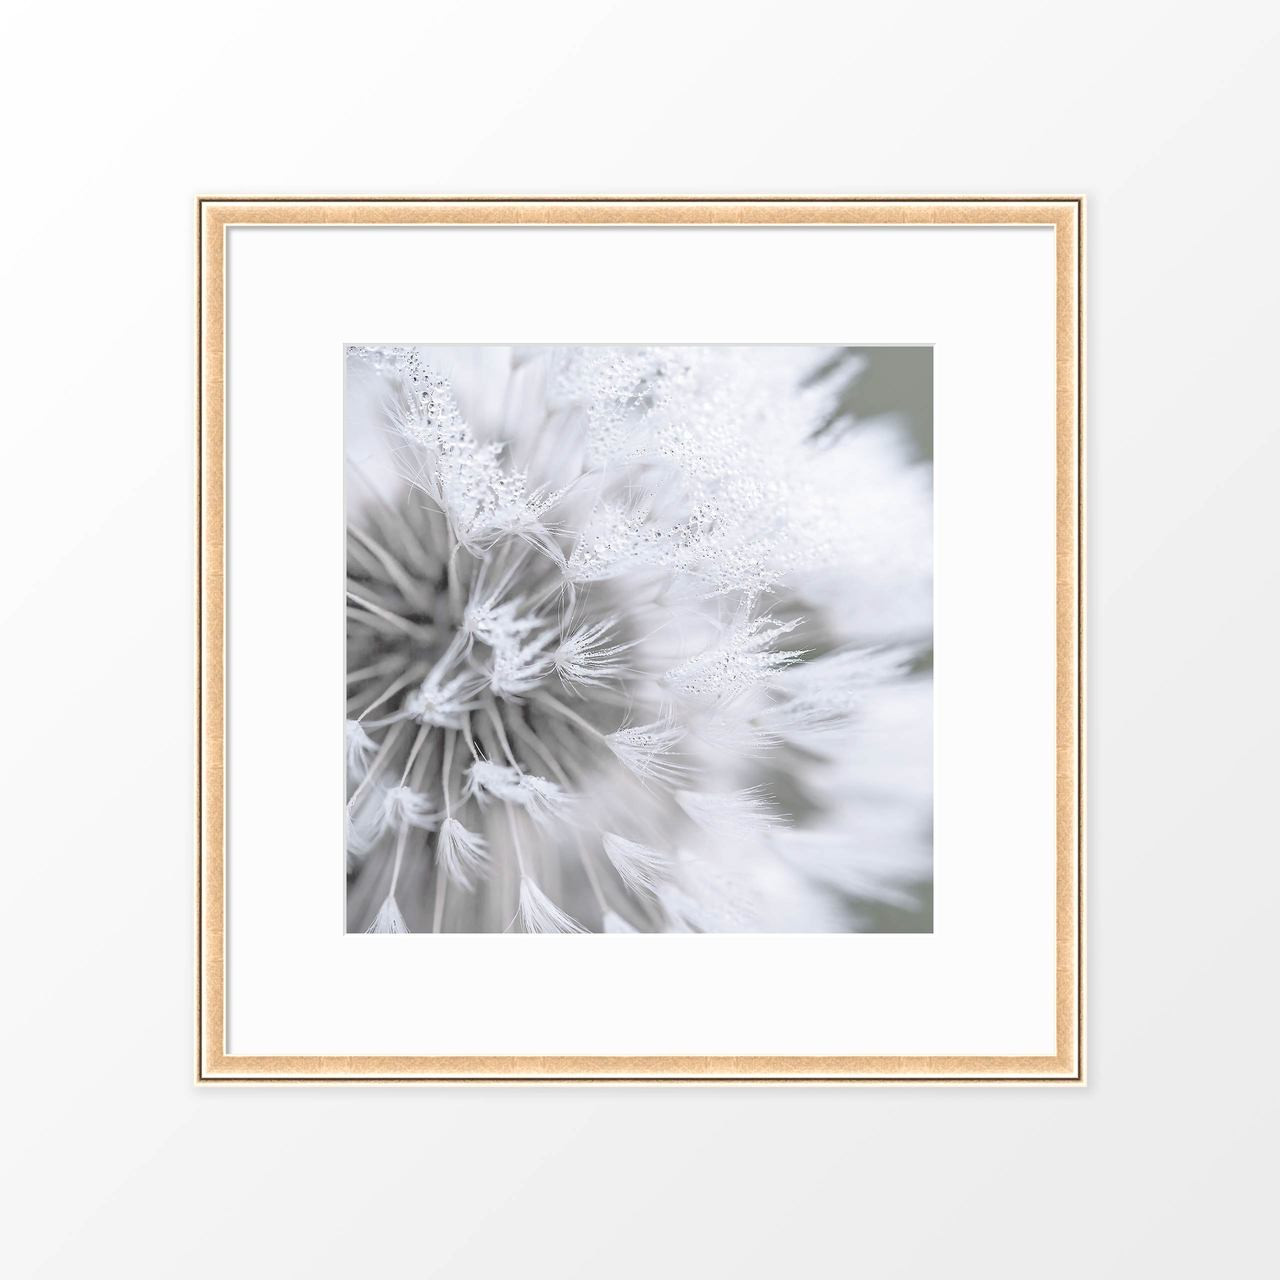 'Dandelion' Photography Poster from The Printed Home